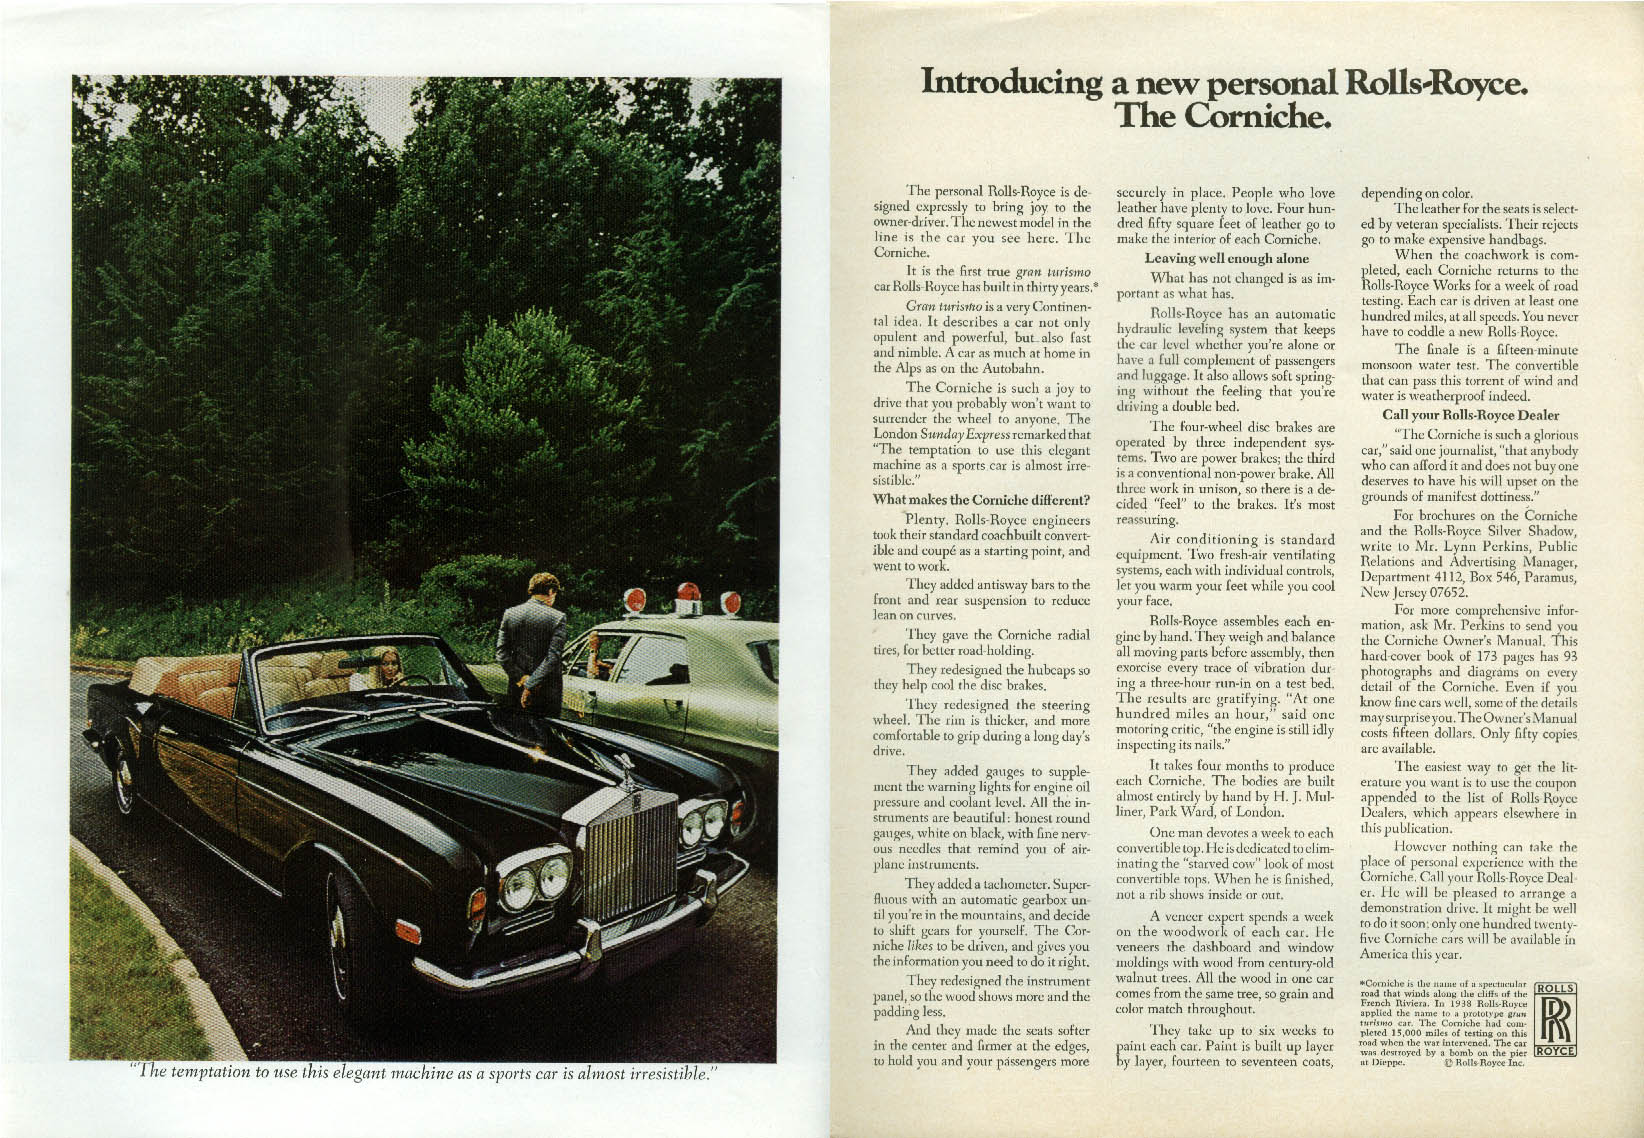 Image for Introducing a new personal Rolls-Royce. The Corniche ad 1972